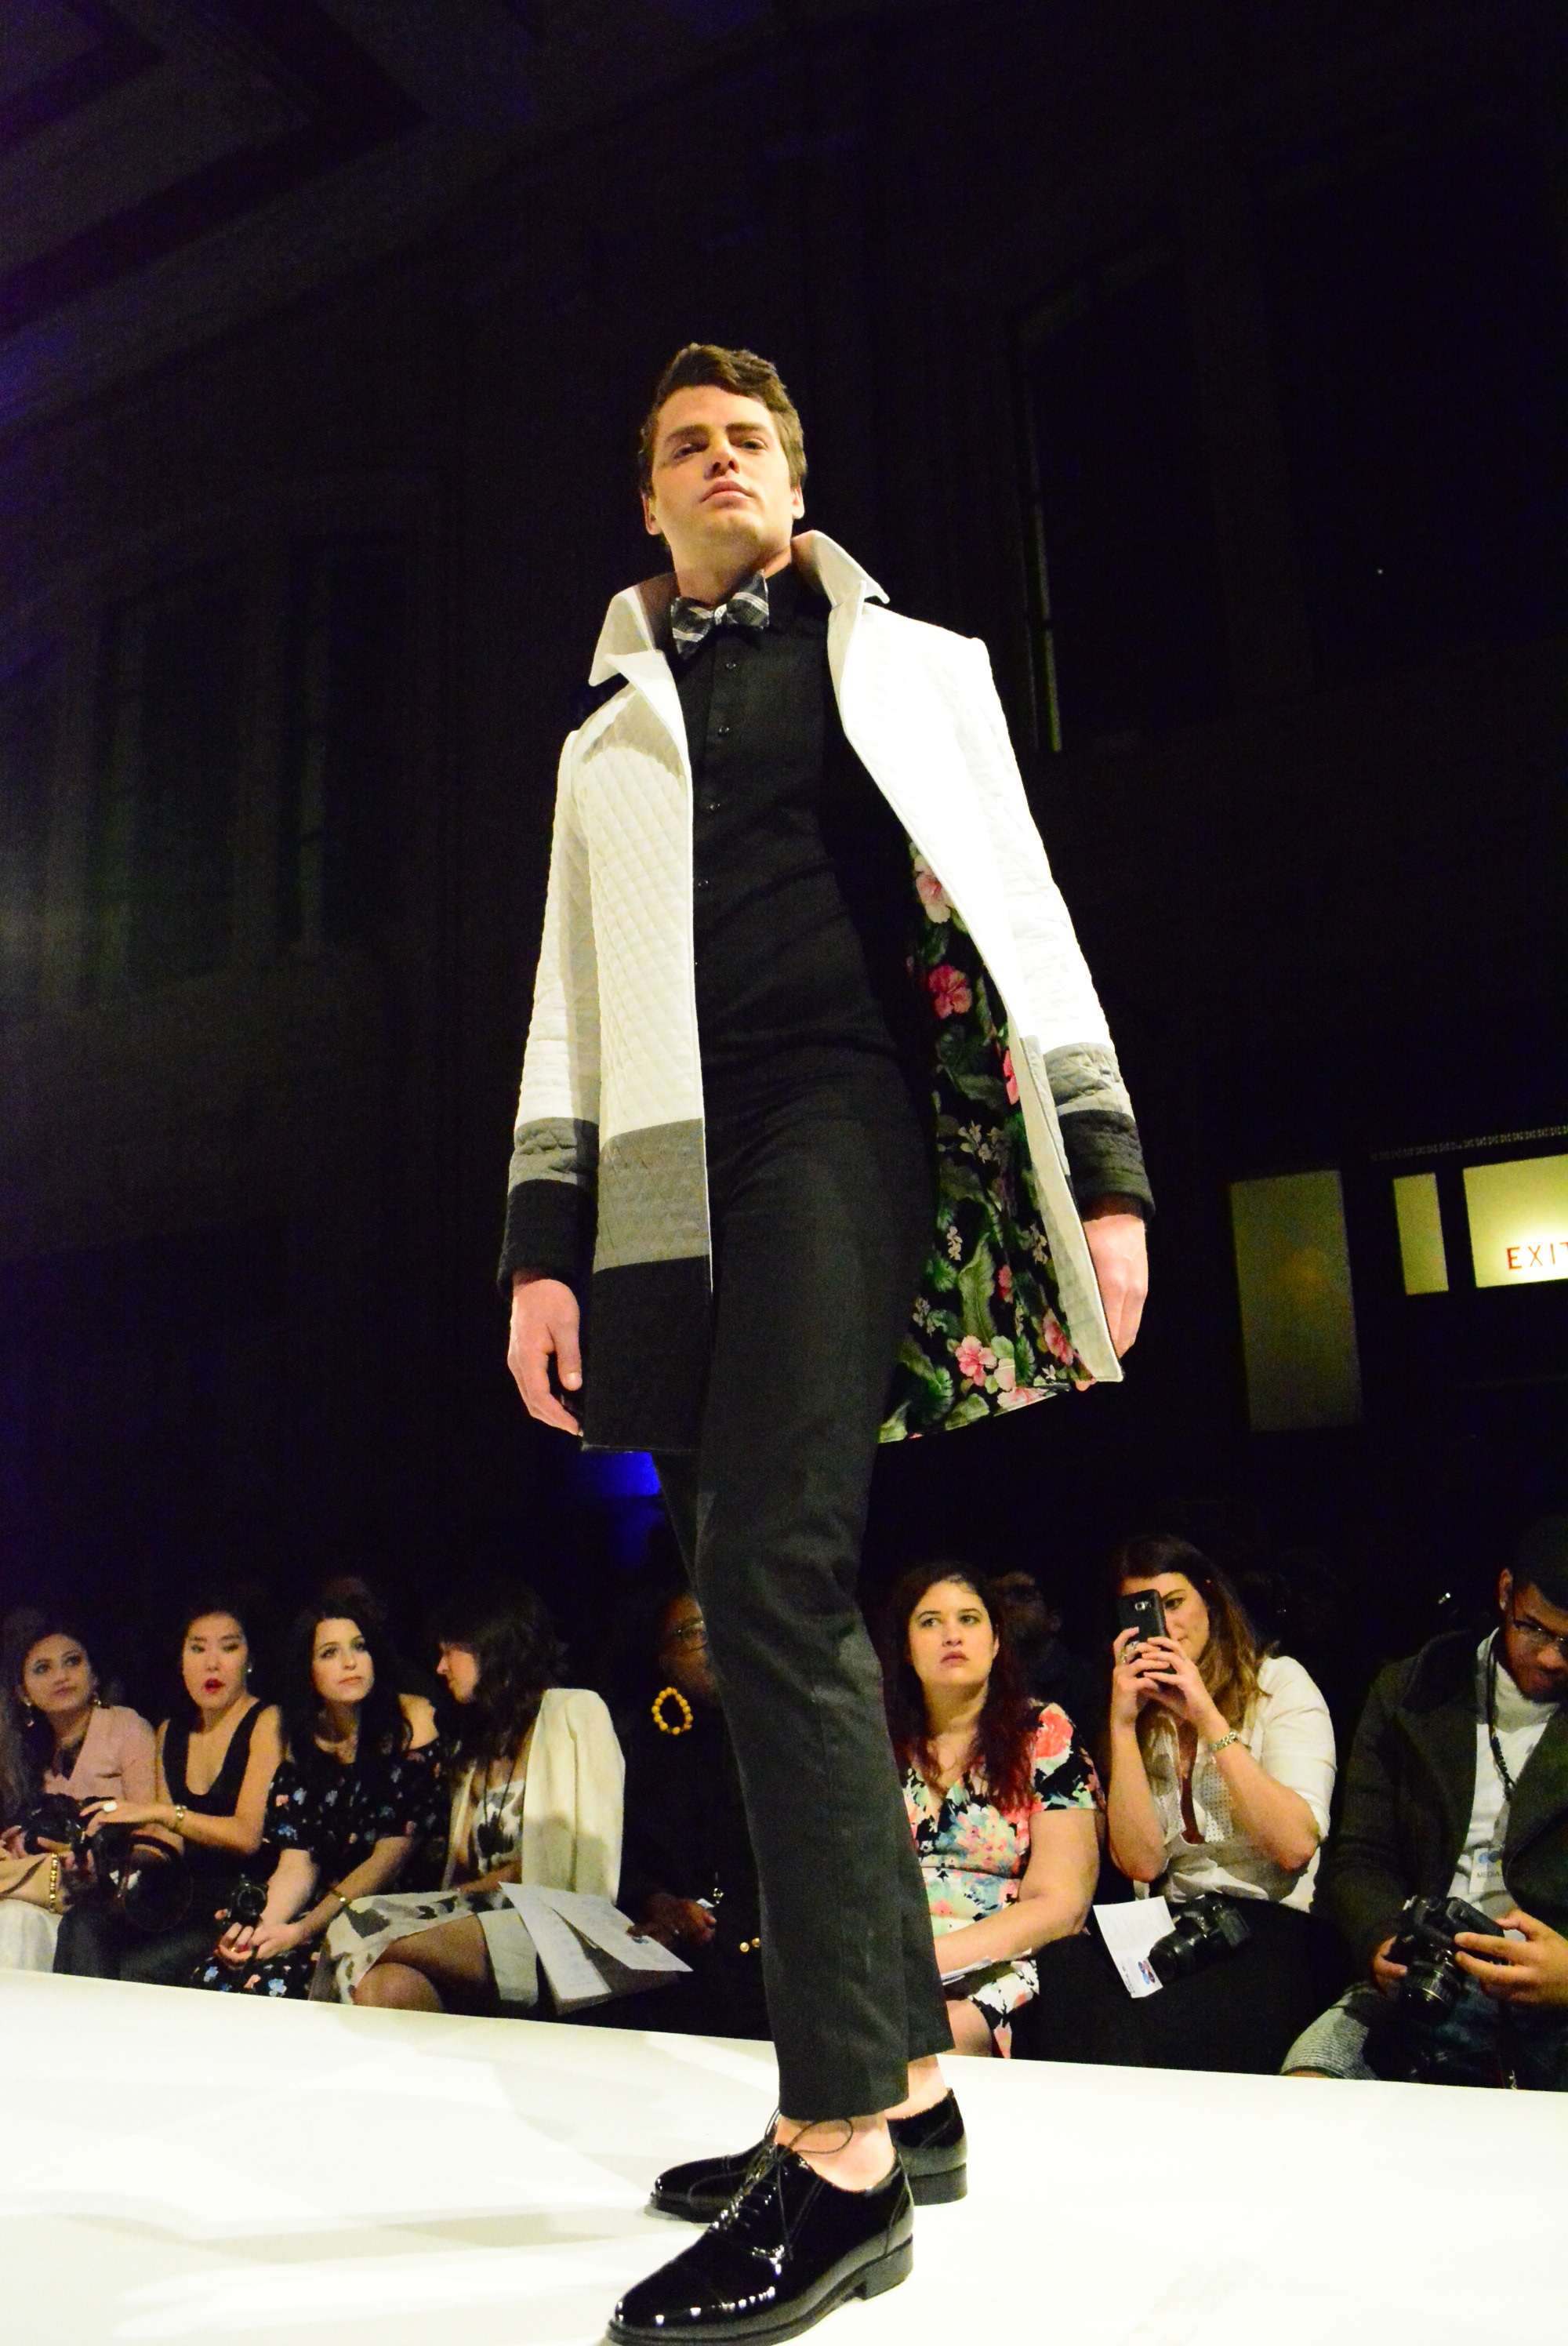 christianMICHEAL show at KCFW